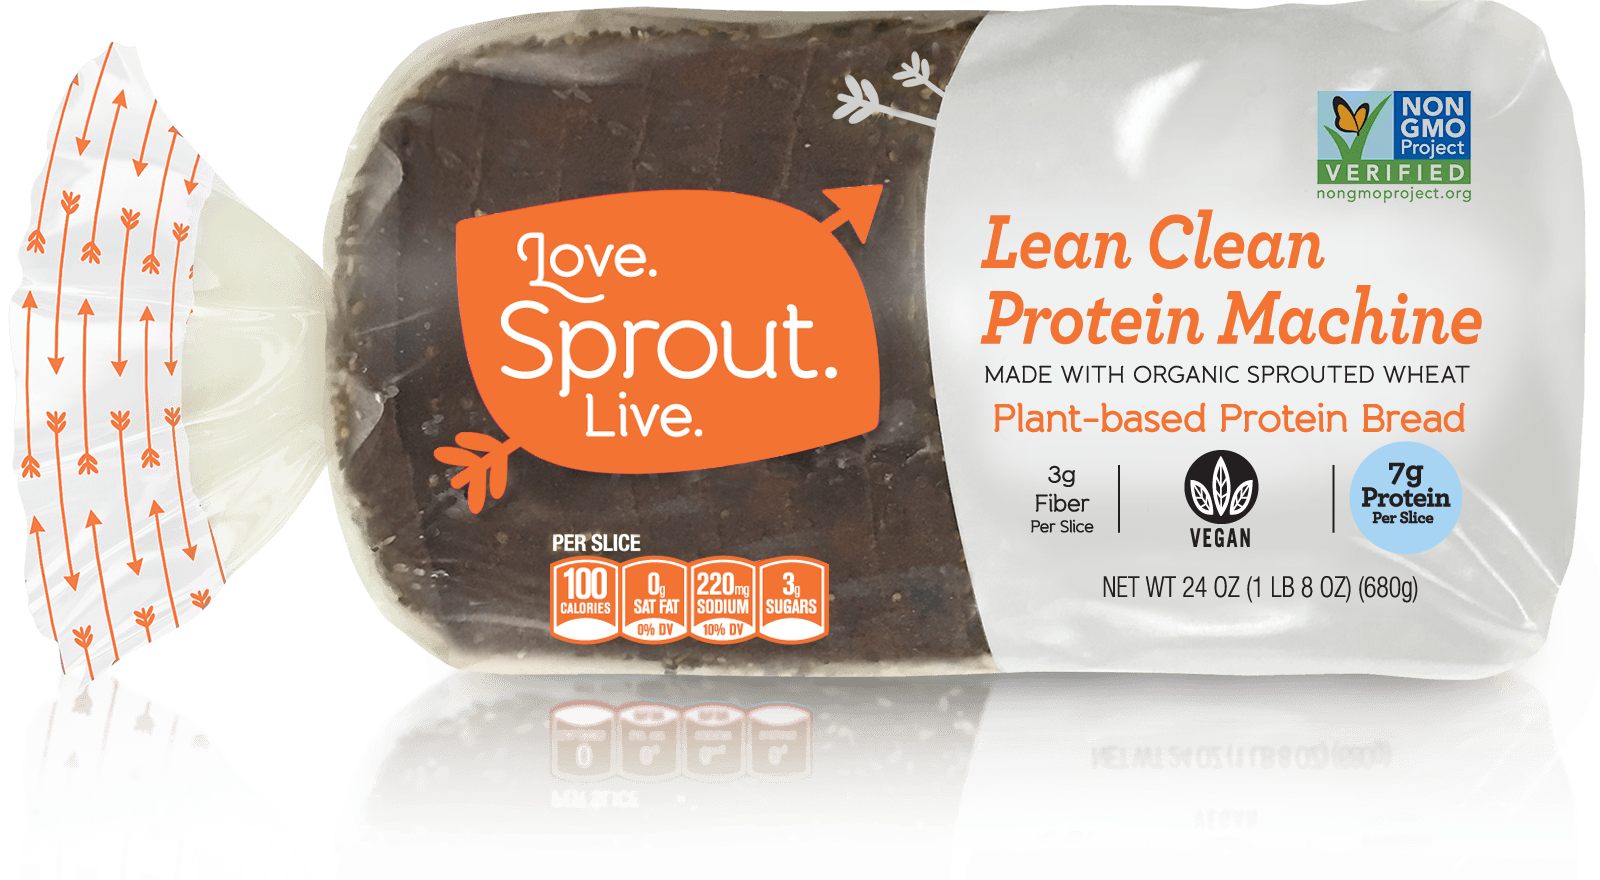 Lean Clean Protein Machine - Feel the power of protein!